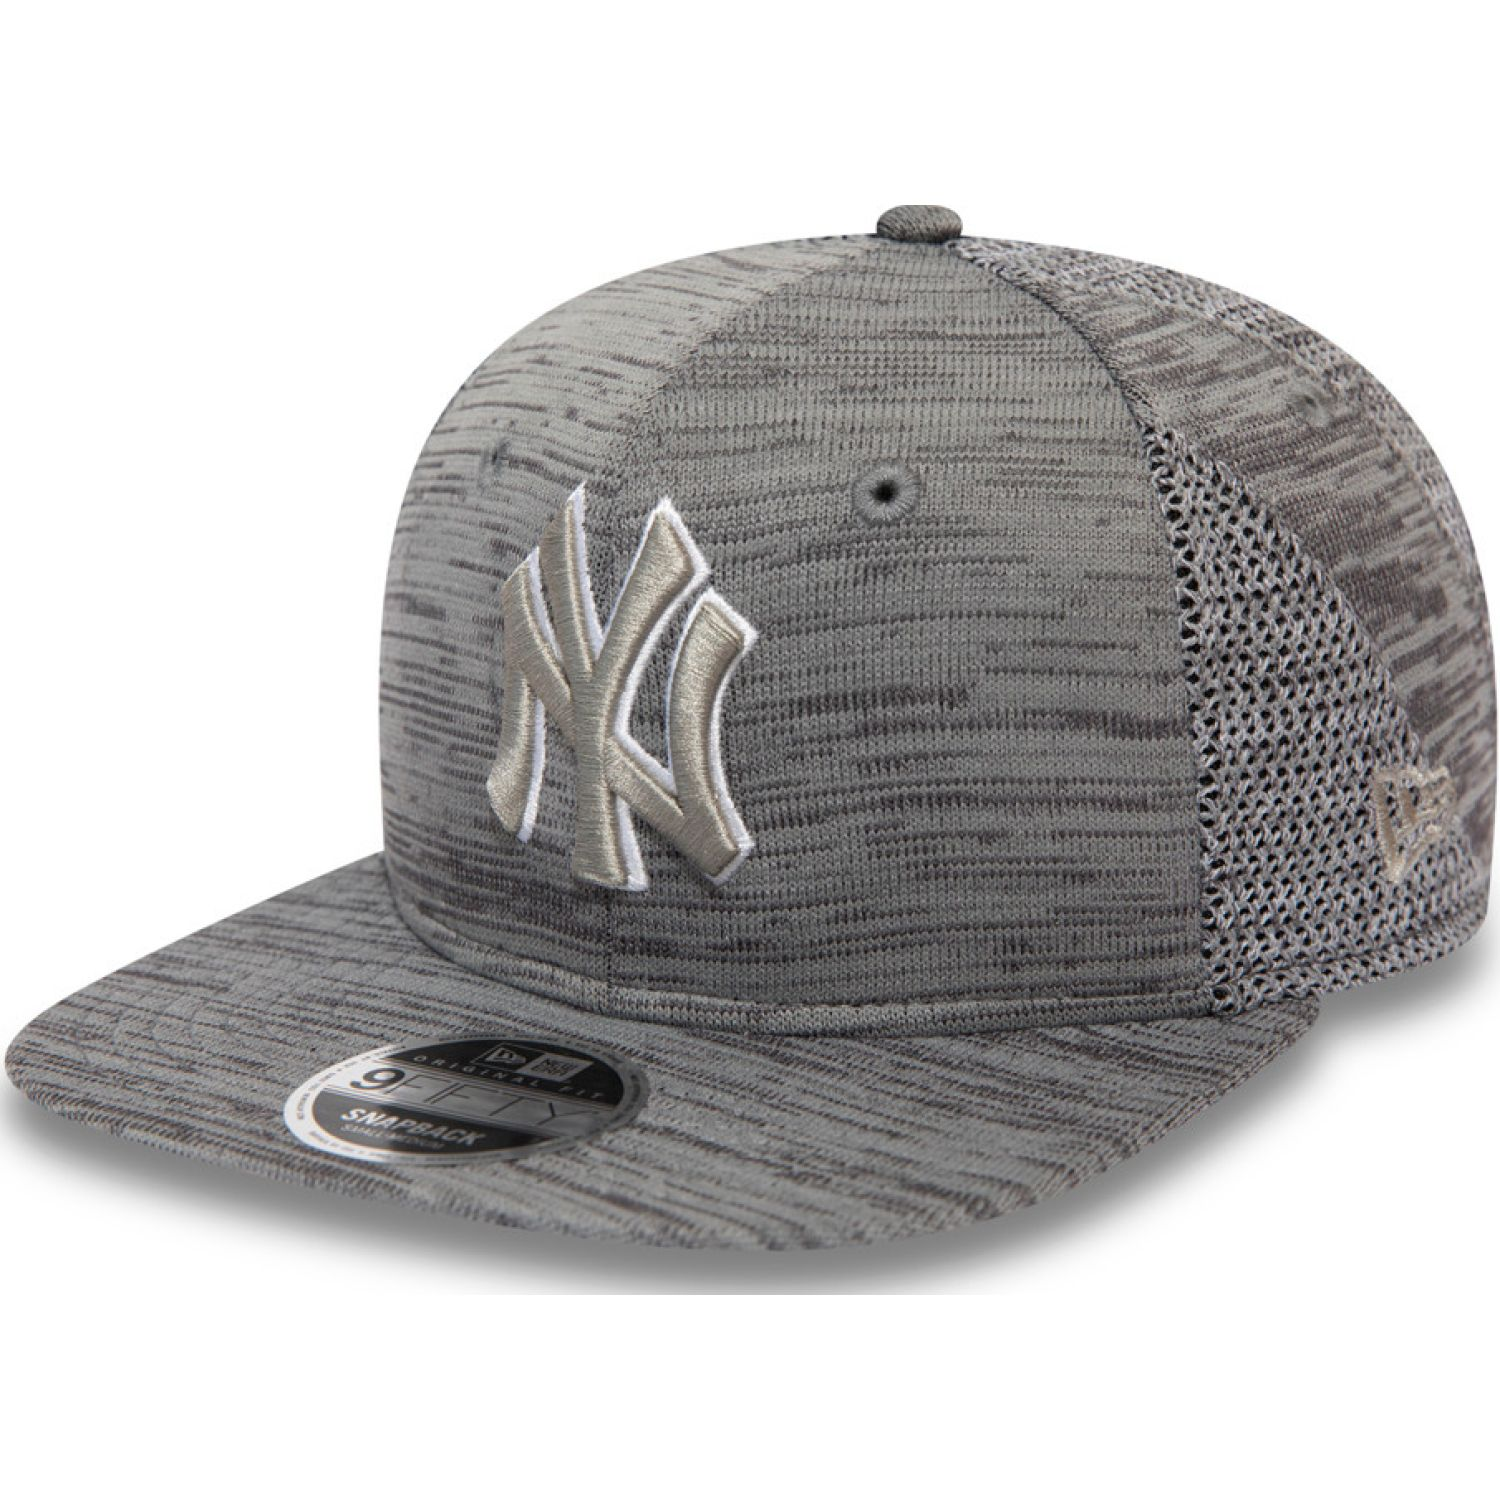 NEW ERA ENGINEERED FIT 9FIFTY NEYYAN GRA Gris Chullos y Gorros